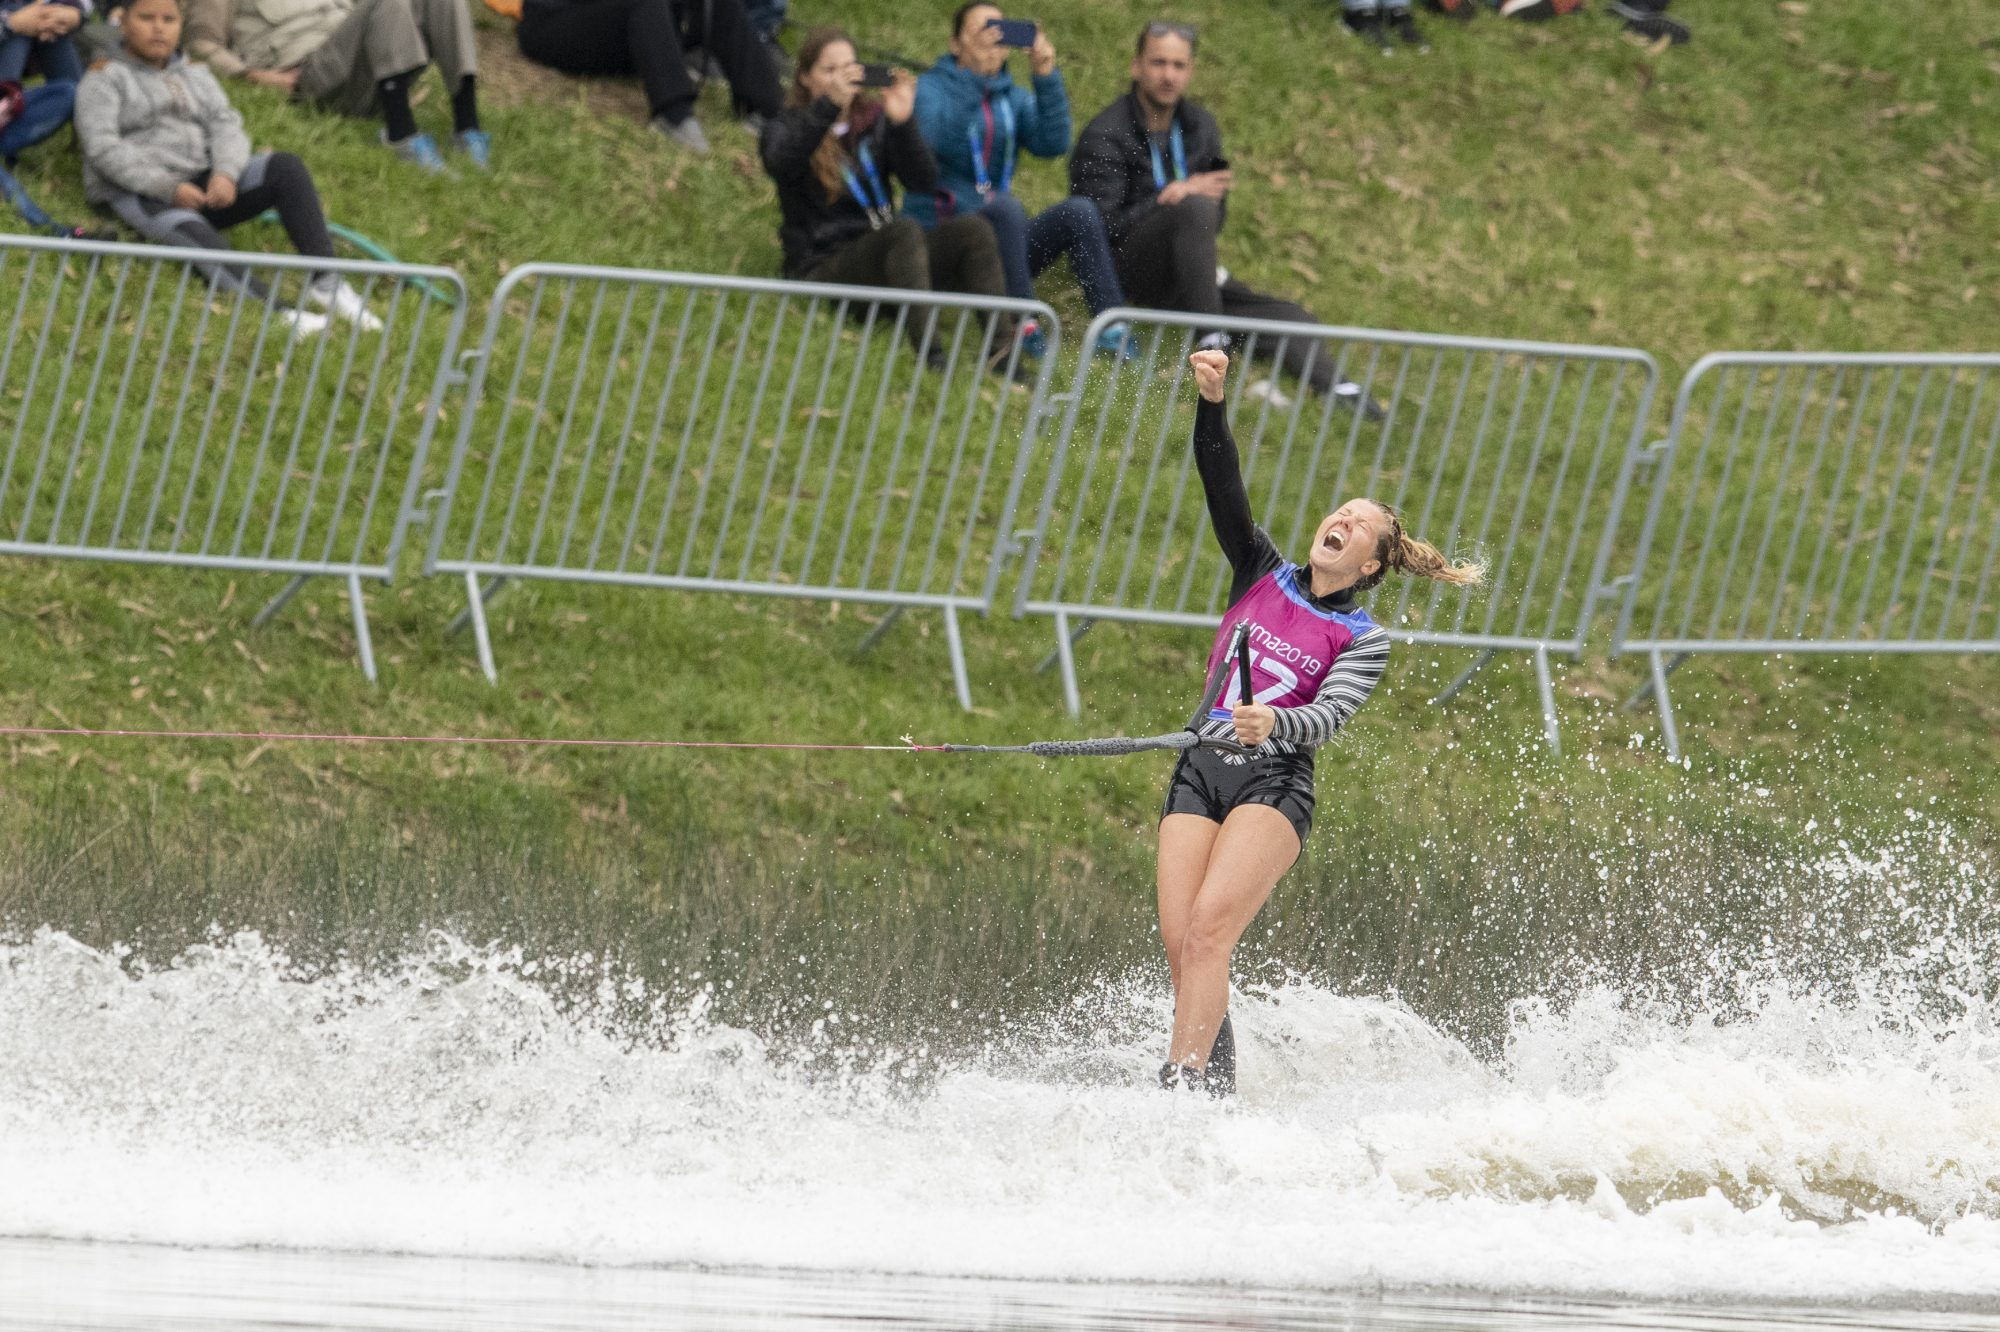 Waterskier pumps fist on water